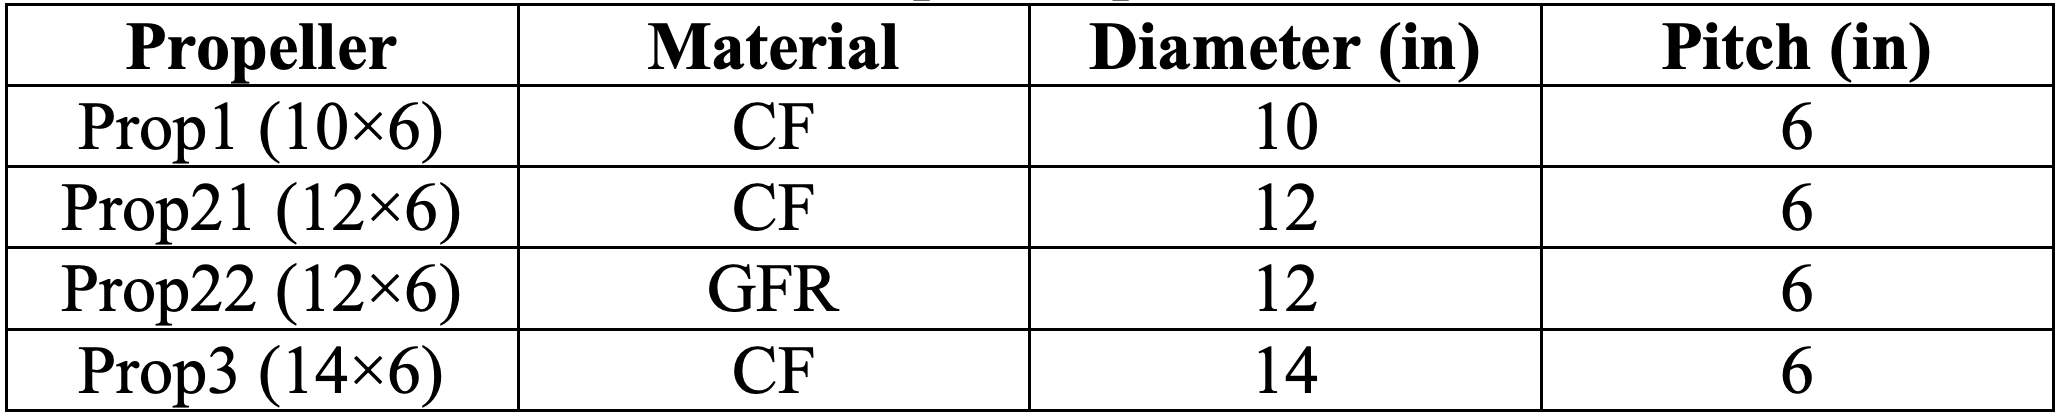 Table of propeller characteristics